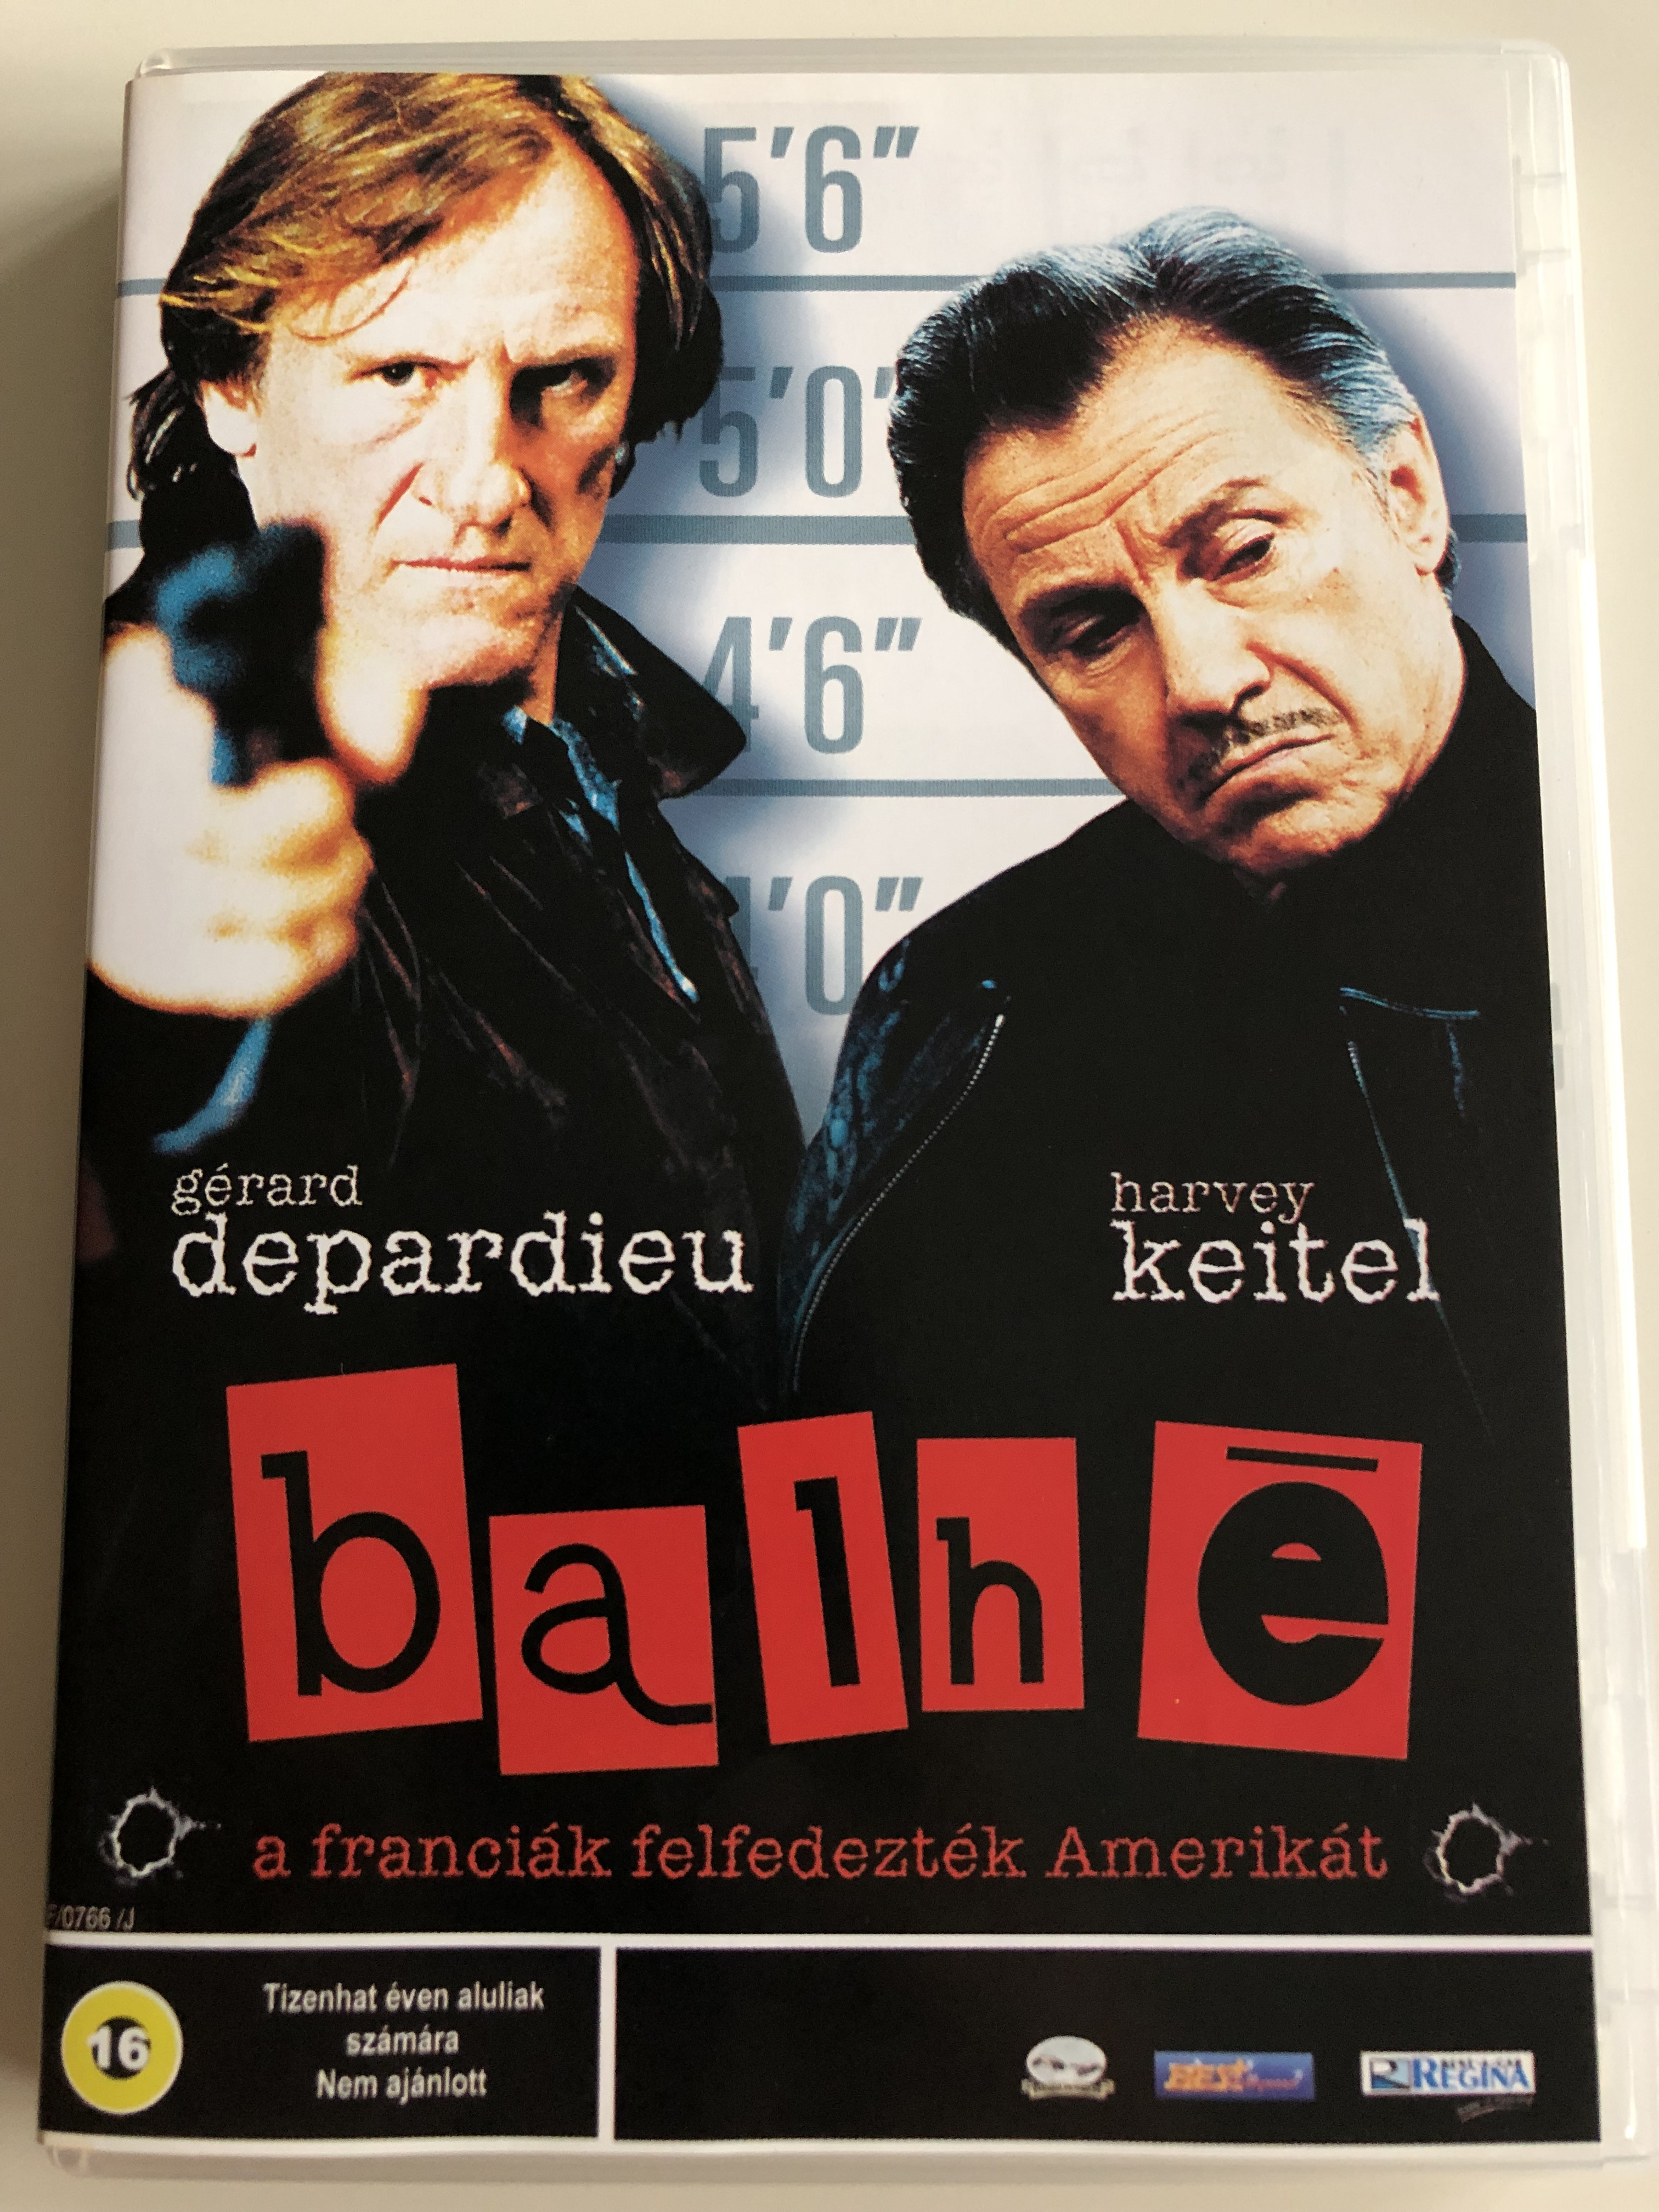 balh-dvd-2003-crime-spree-wanted-directed-by-brad-mirman-starring-g-rard-depardieu-harvey-keitel-johnny-hallyday-renaud-1-.jpg